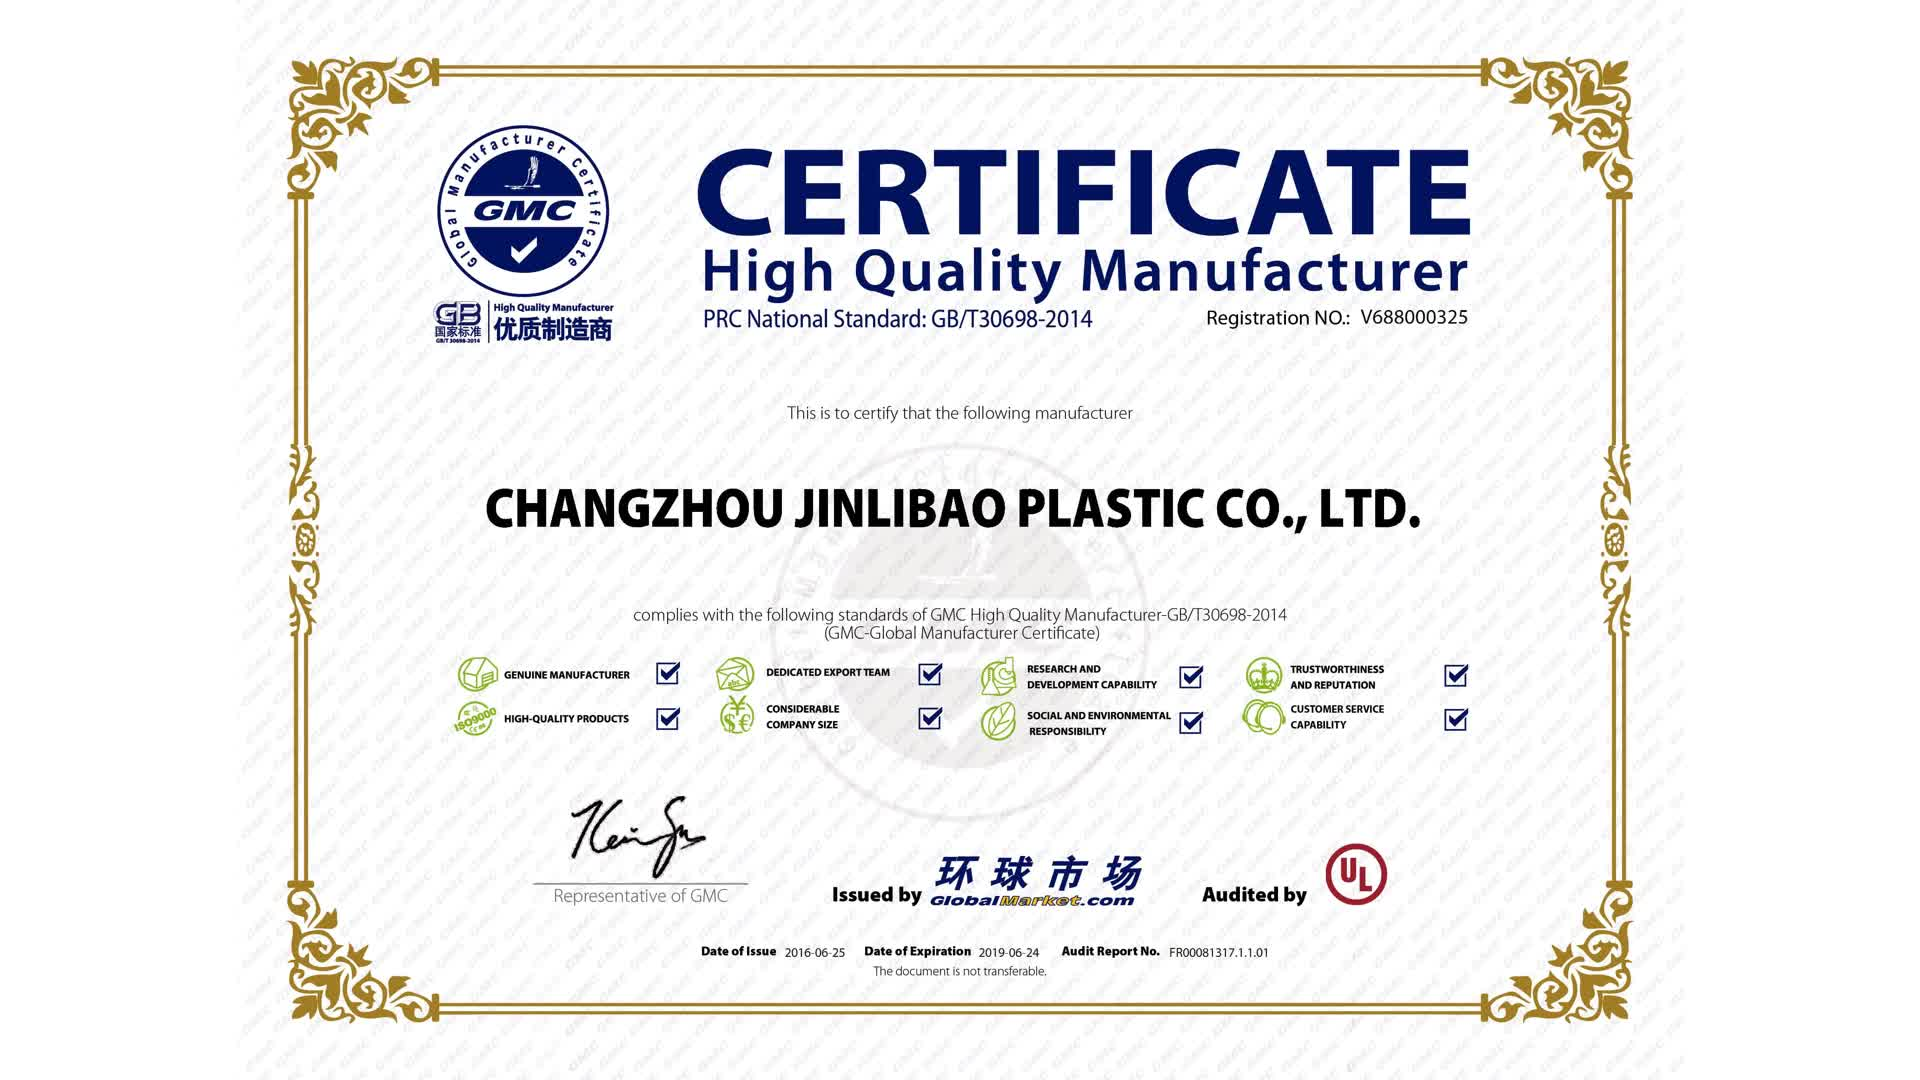 transparent petg sheets and products ( Certified manufacturer by SGS )